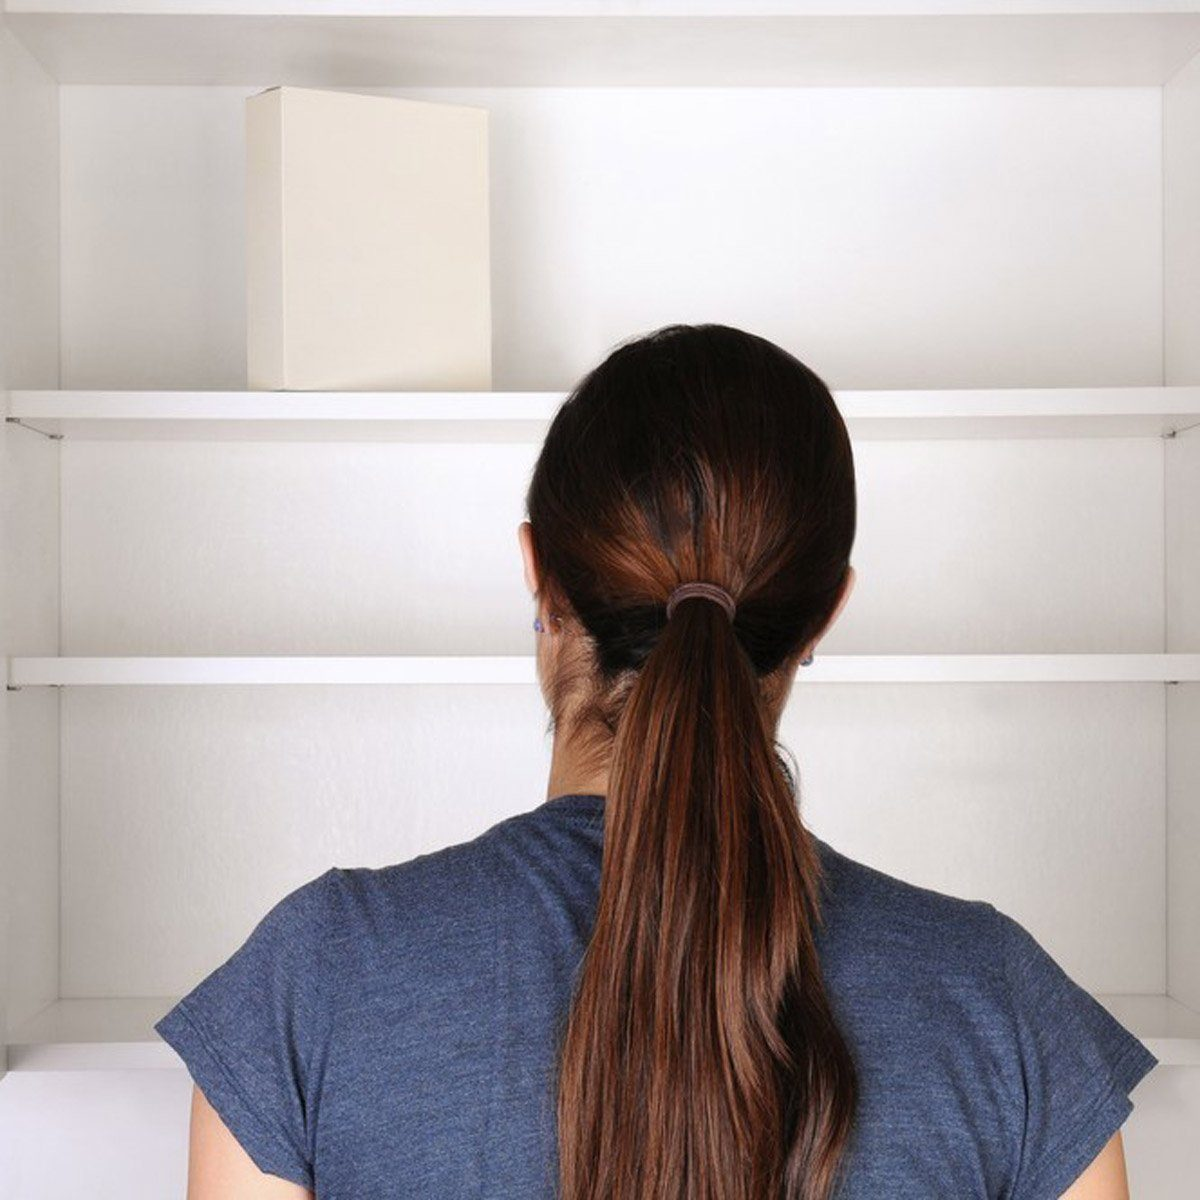 Hang Inside Cabinets or Cupboards